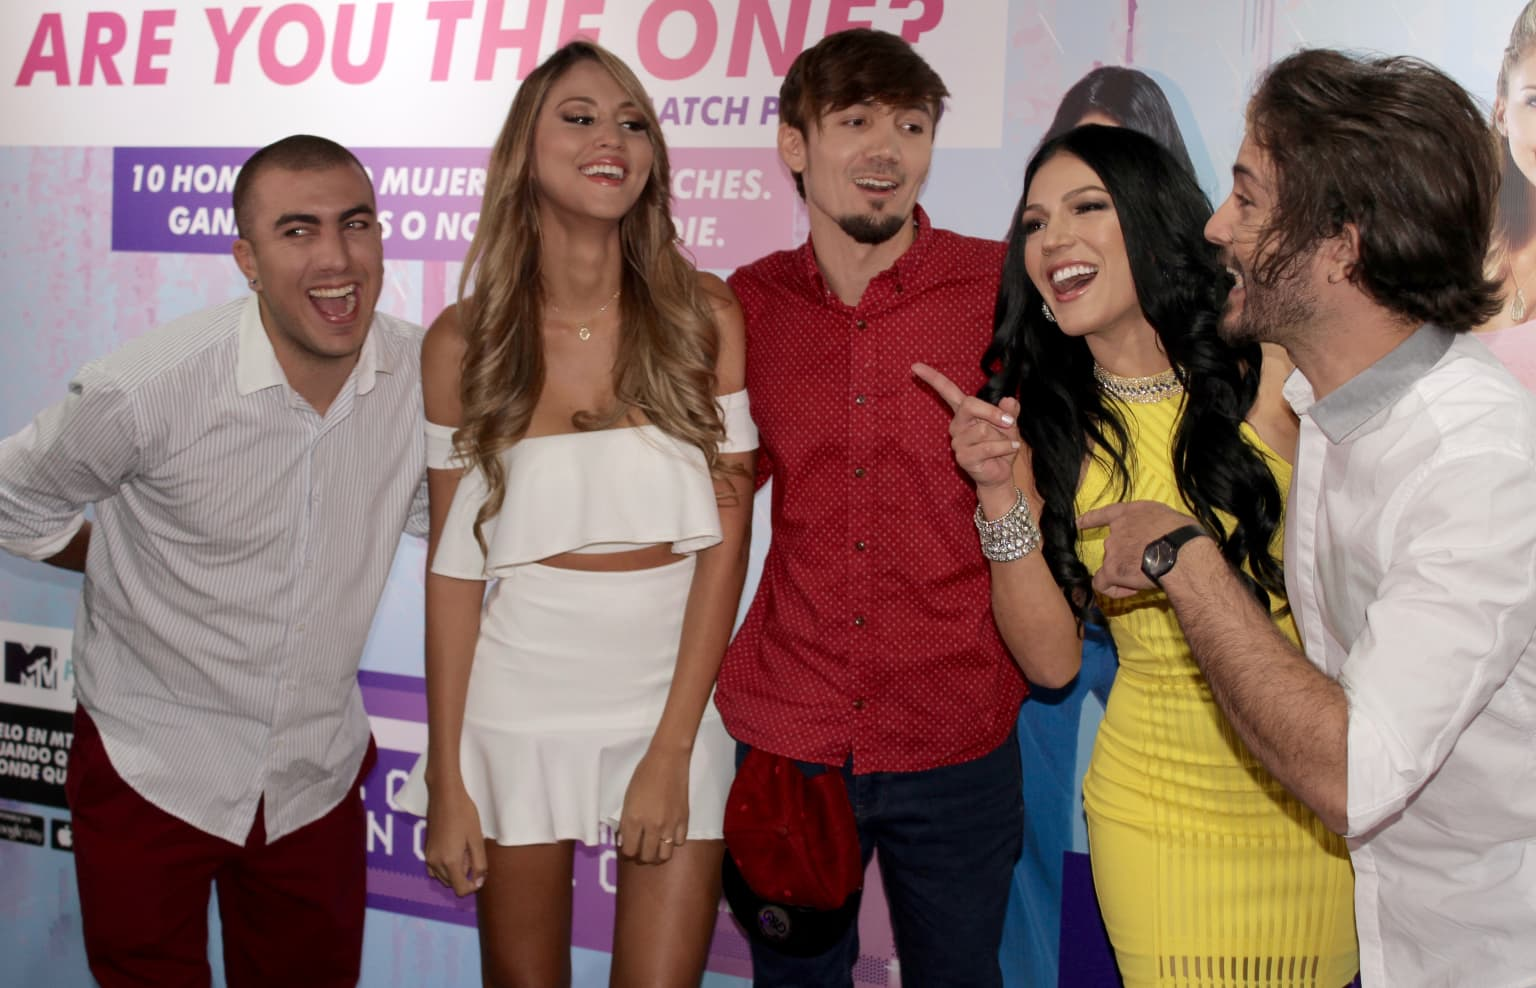 Are You The One El Match Perfecto - MTV - FlashTVLA